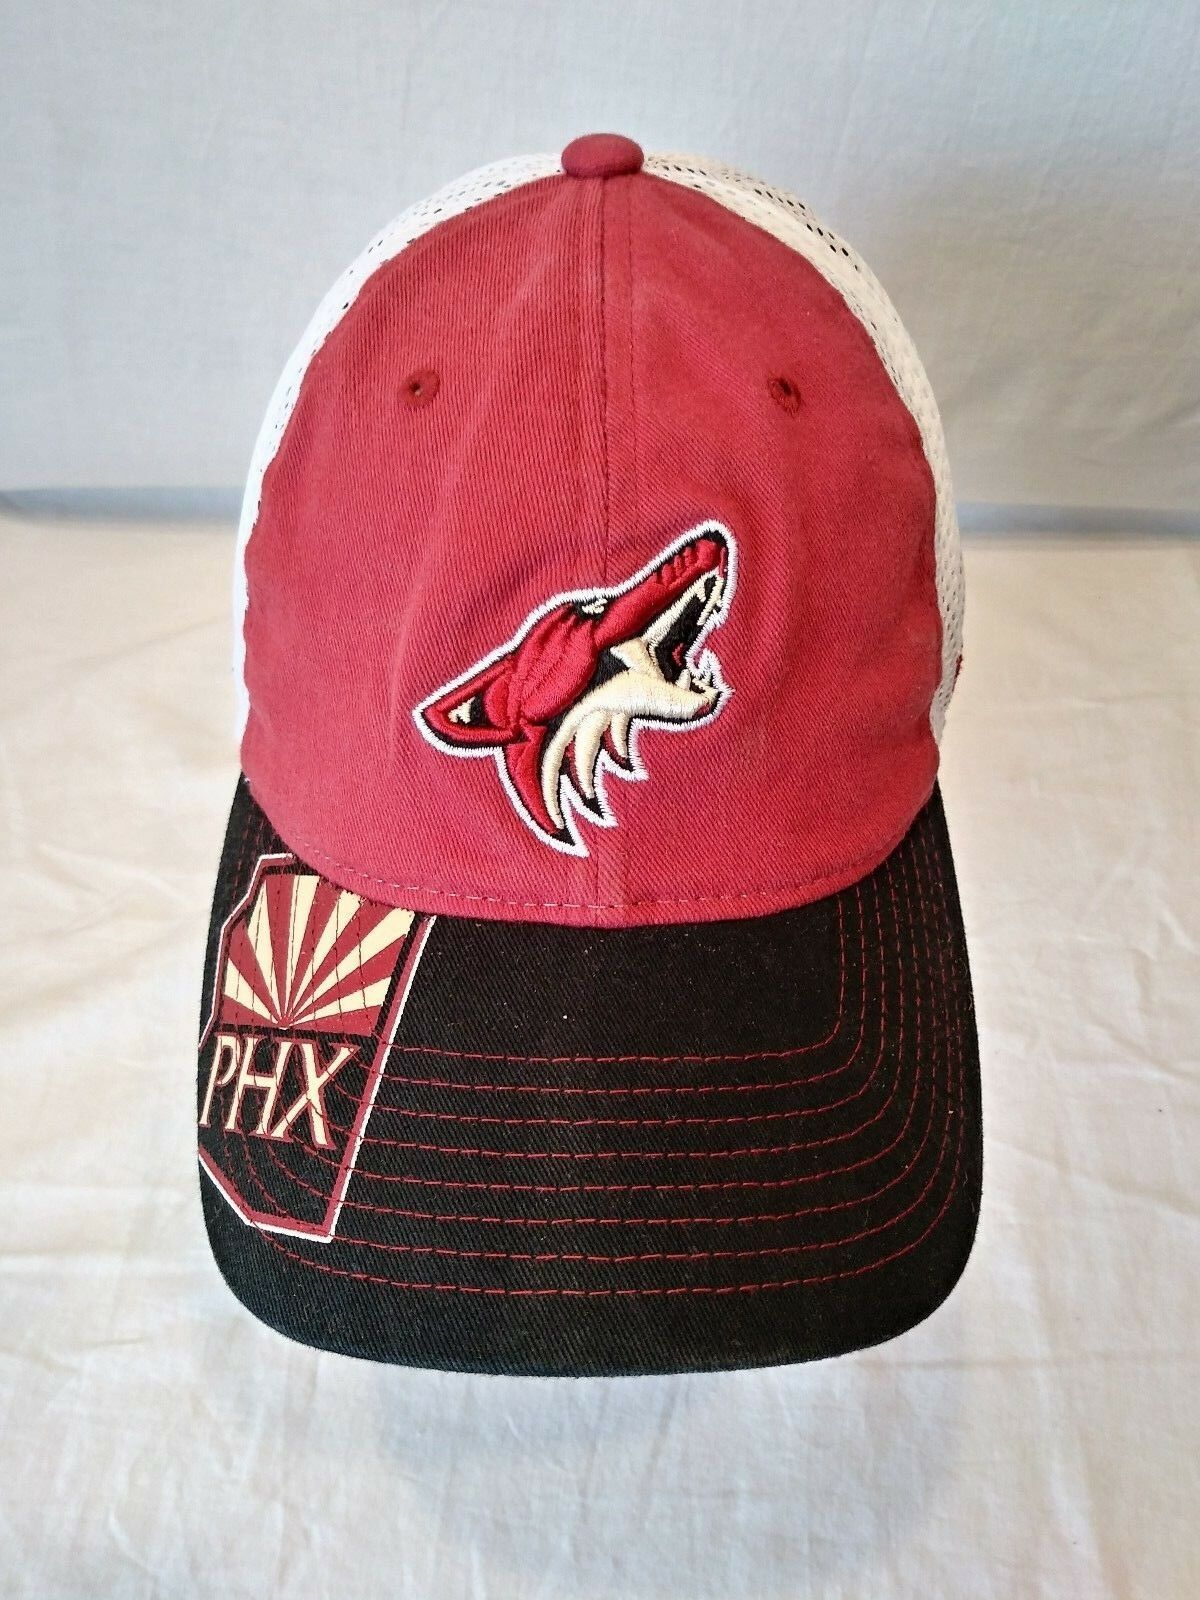 promo code dc2dd 0818a ... purchase arizona coyotes hat nhl hockey reebok mesh truckers hat coyotes  fitted baseball cap l xl